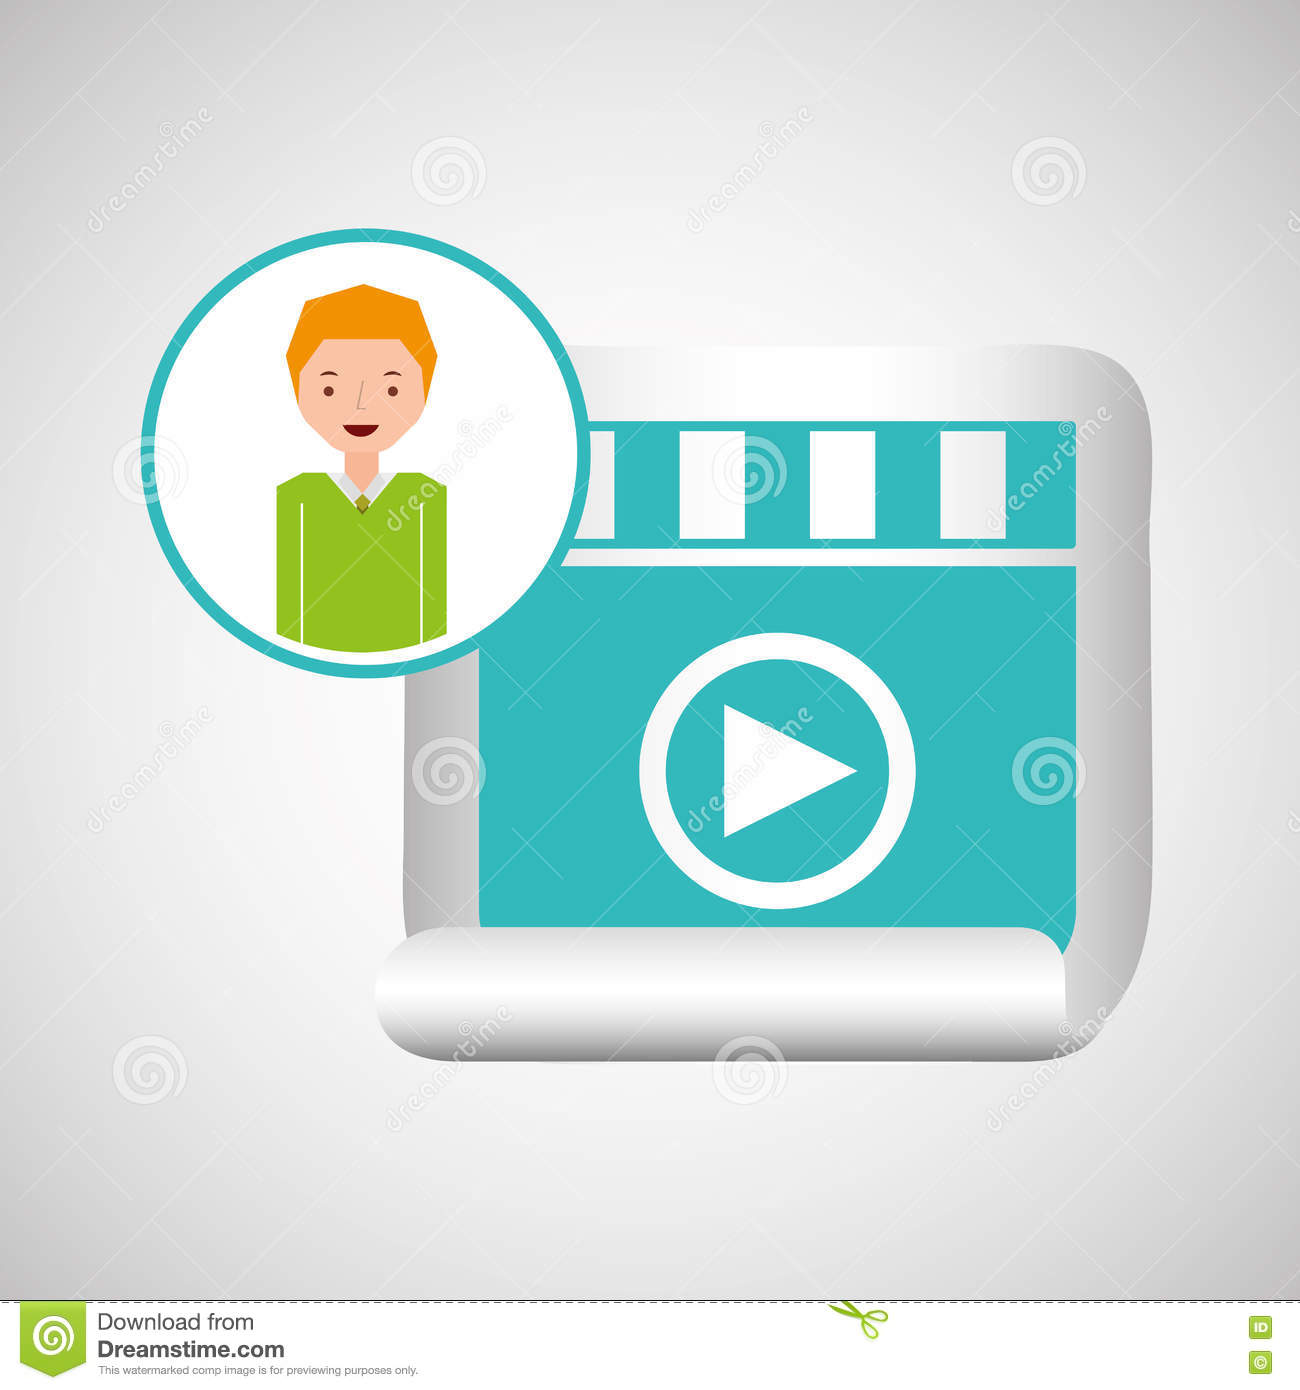 Download Cartoon Video Player Guy Design Stock Vector